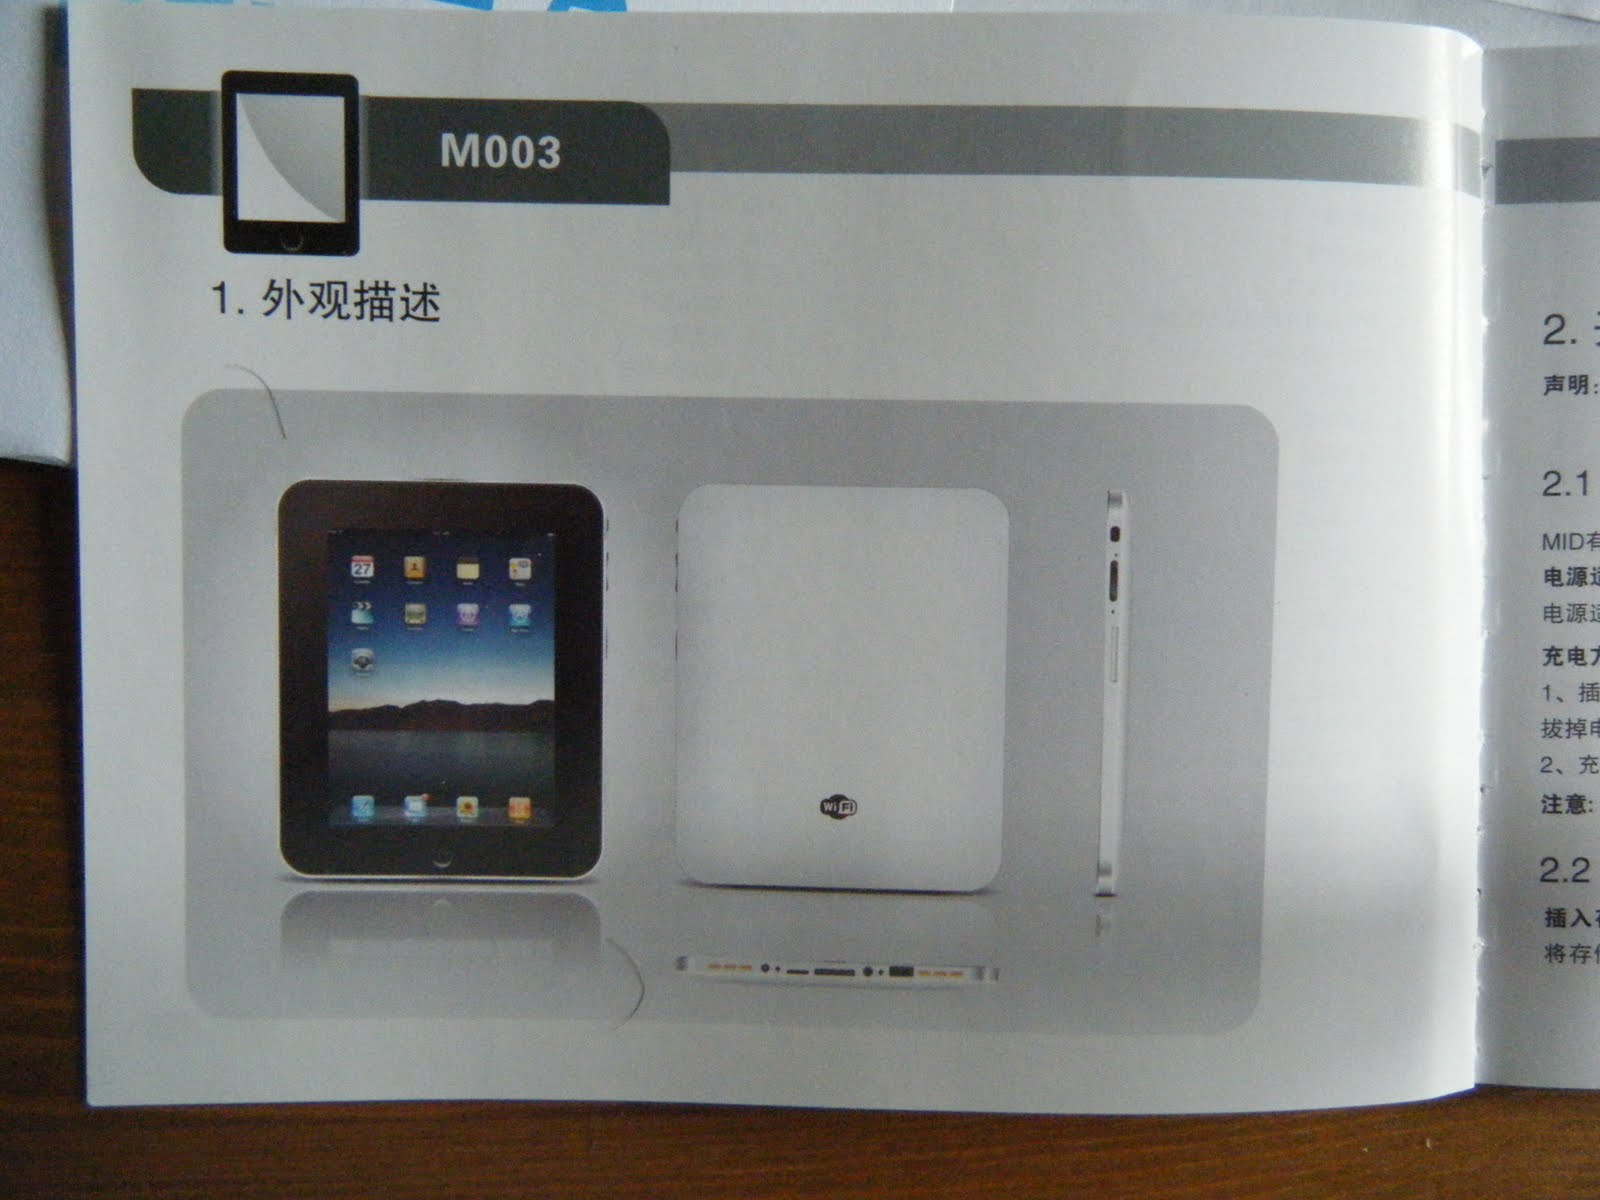 Chinese iPad (Eken M003) : New Firmware and Android Market ...